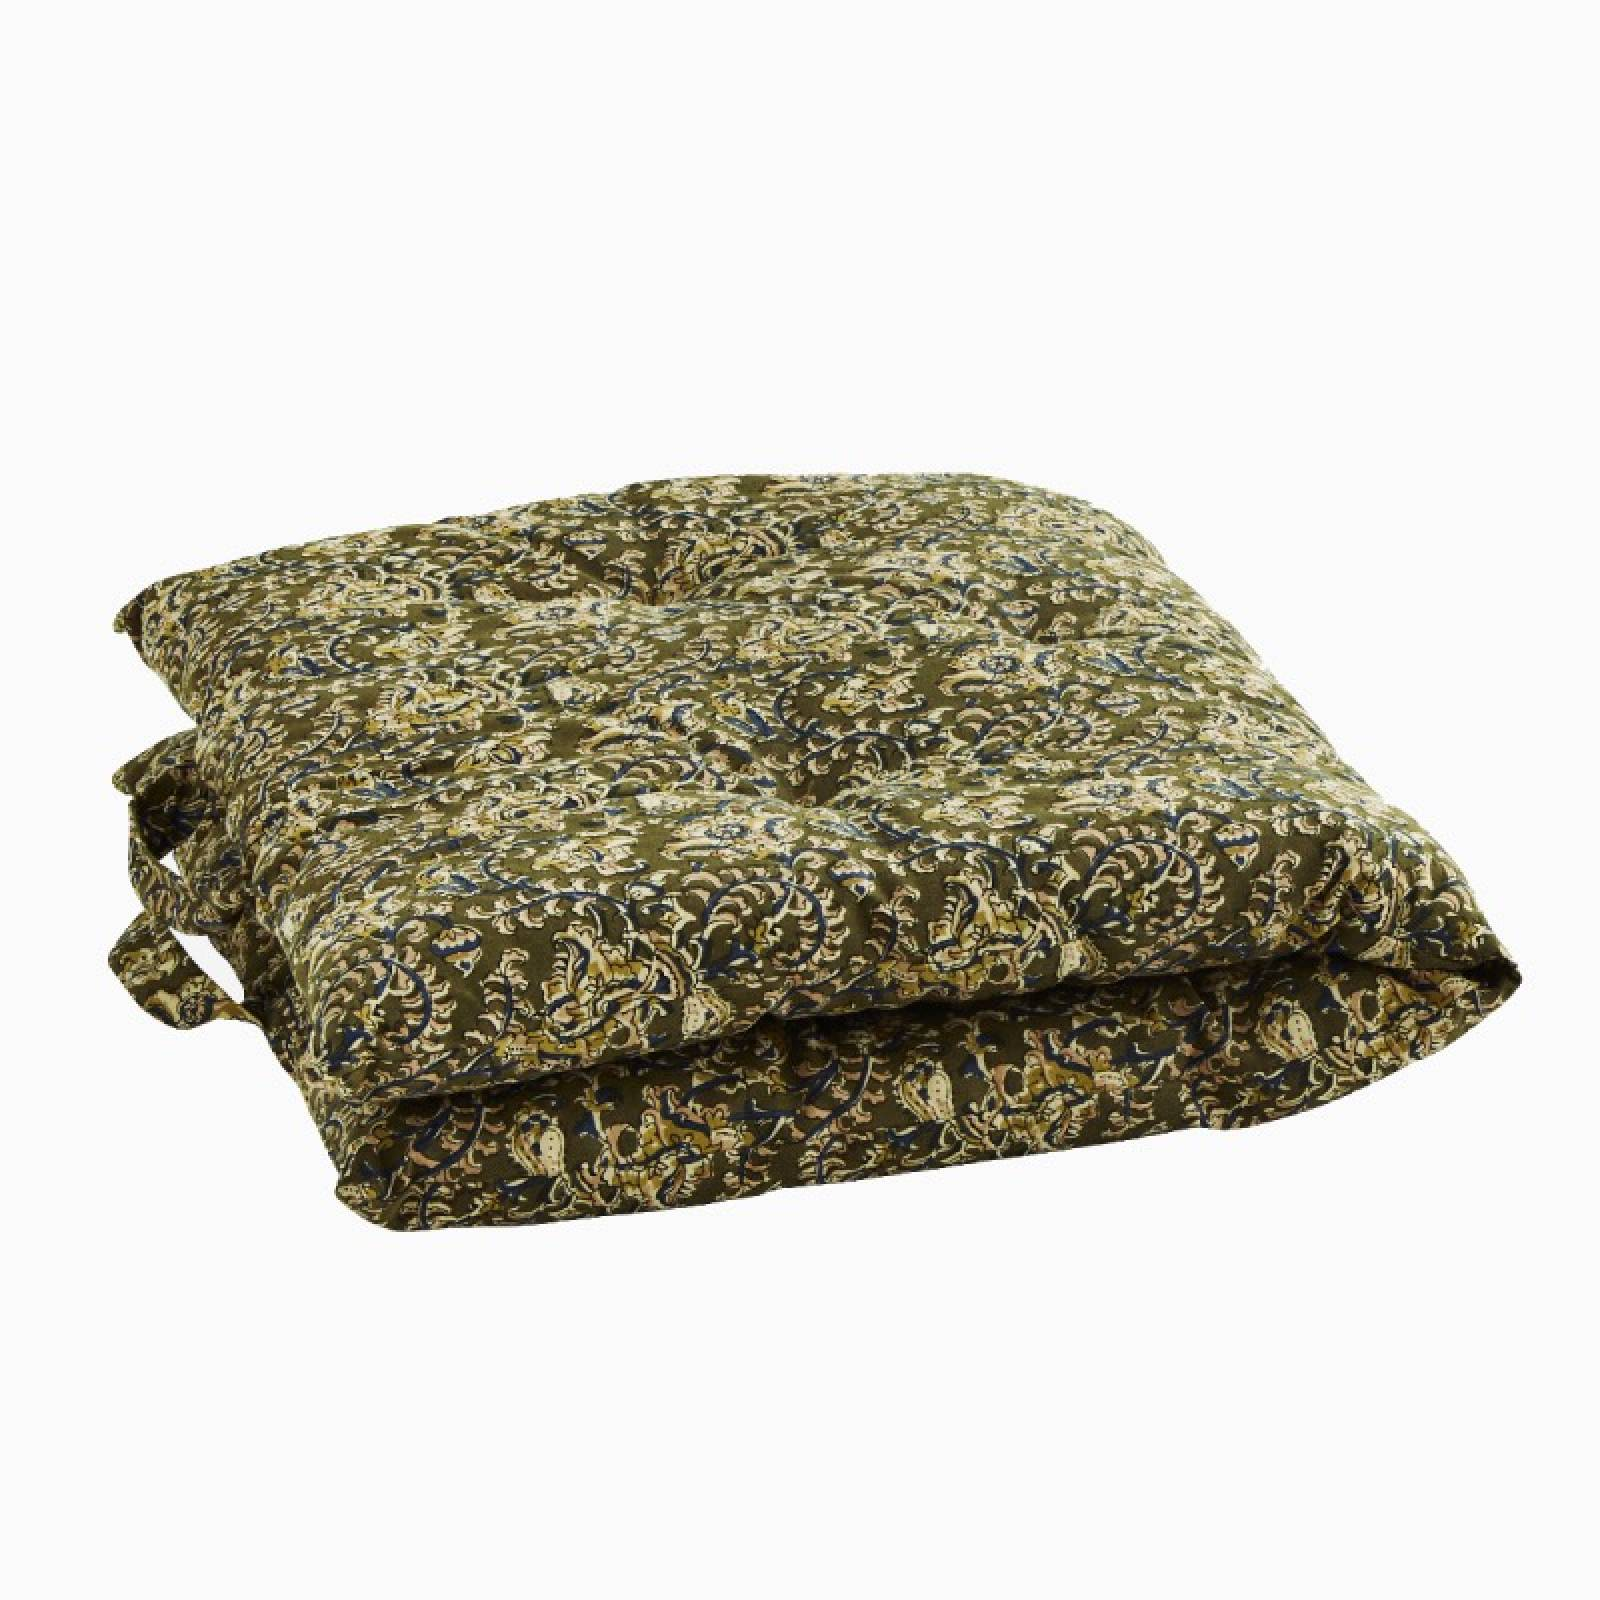 Printed Single Cotton Folding Cushion In Olive Green